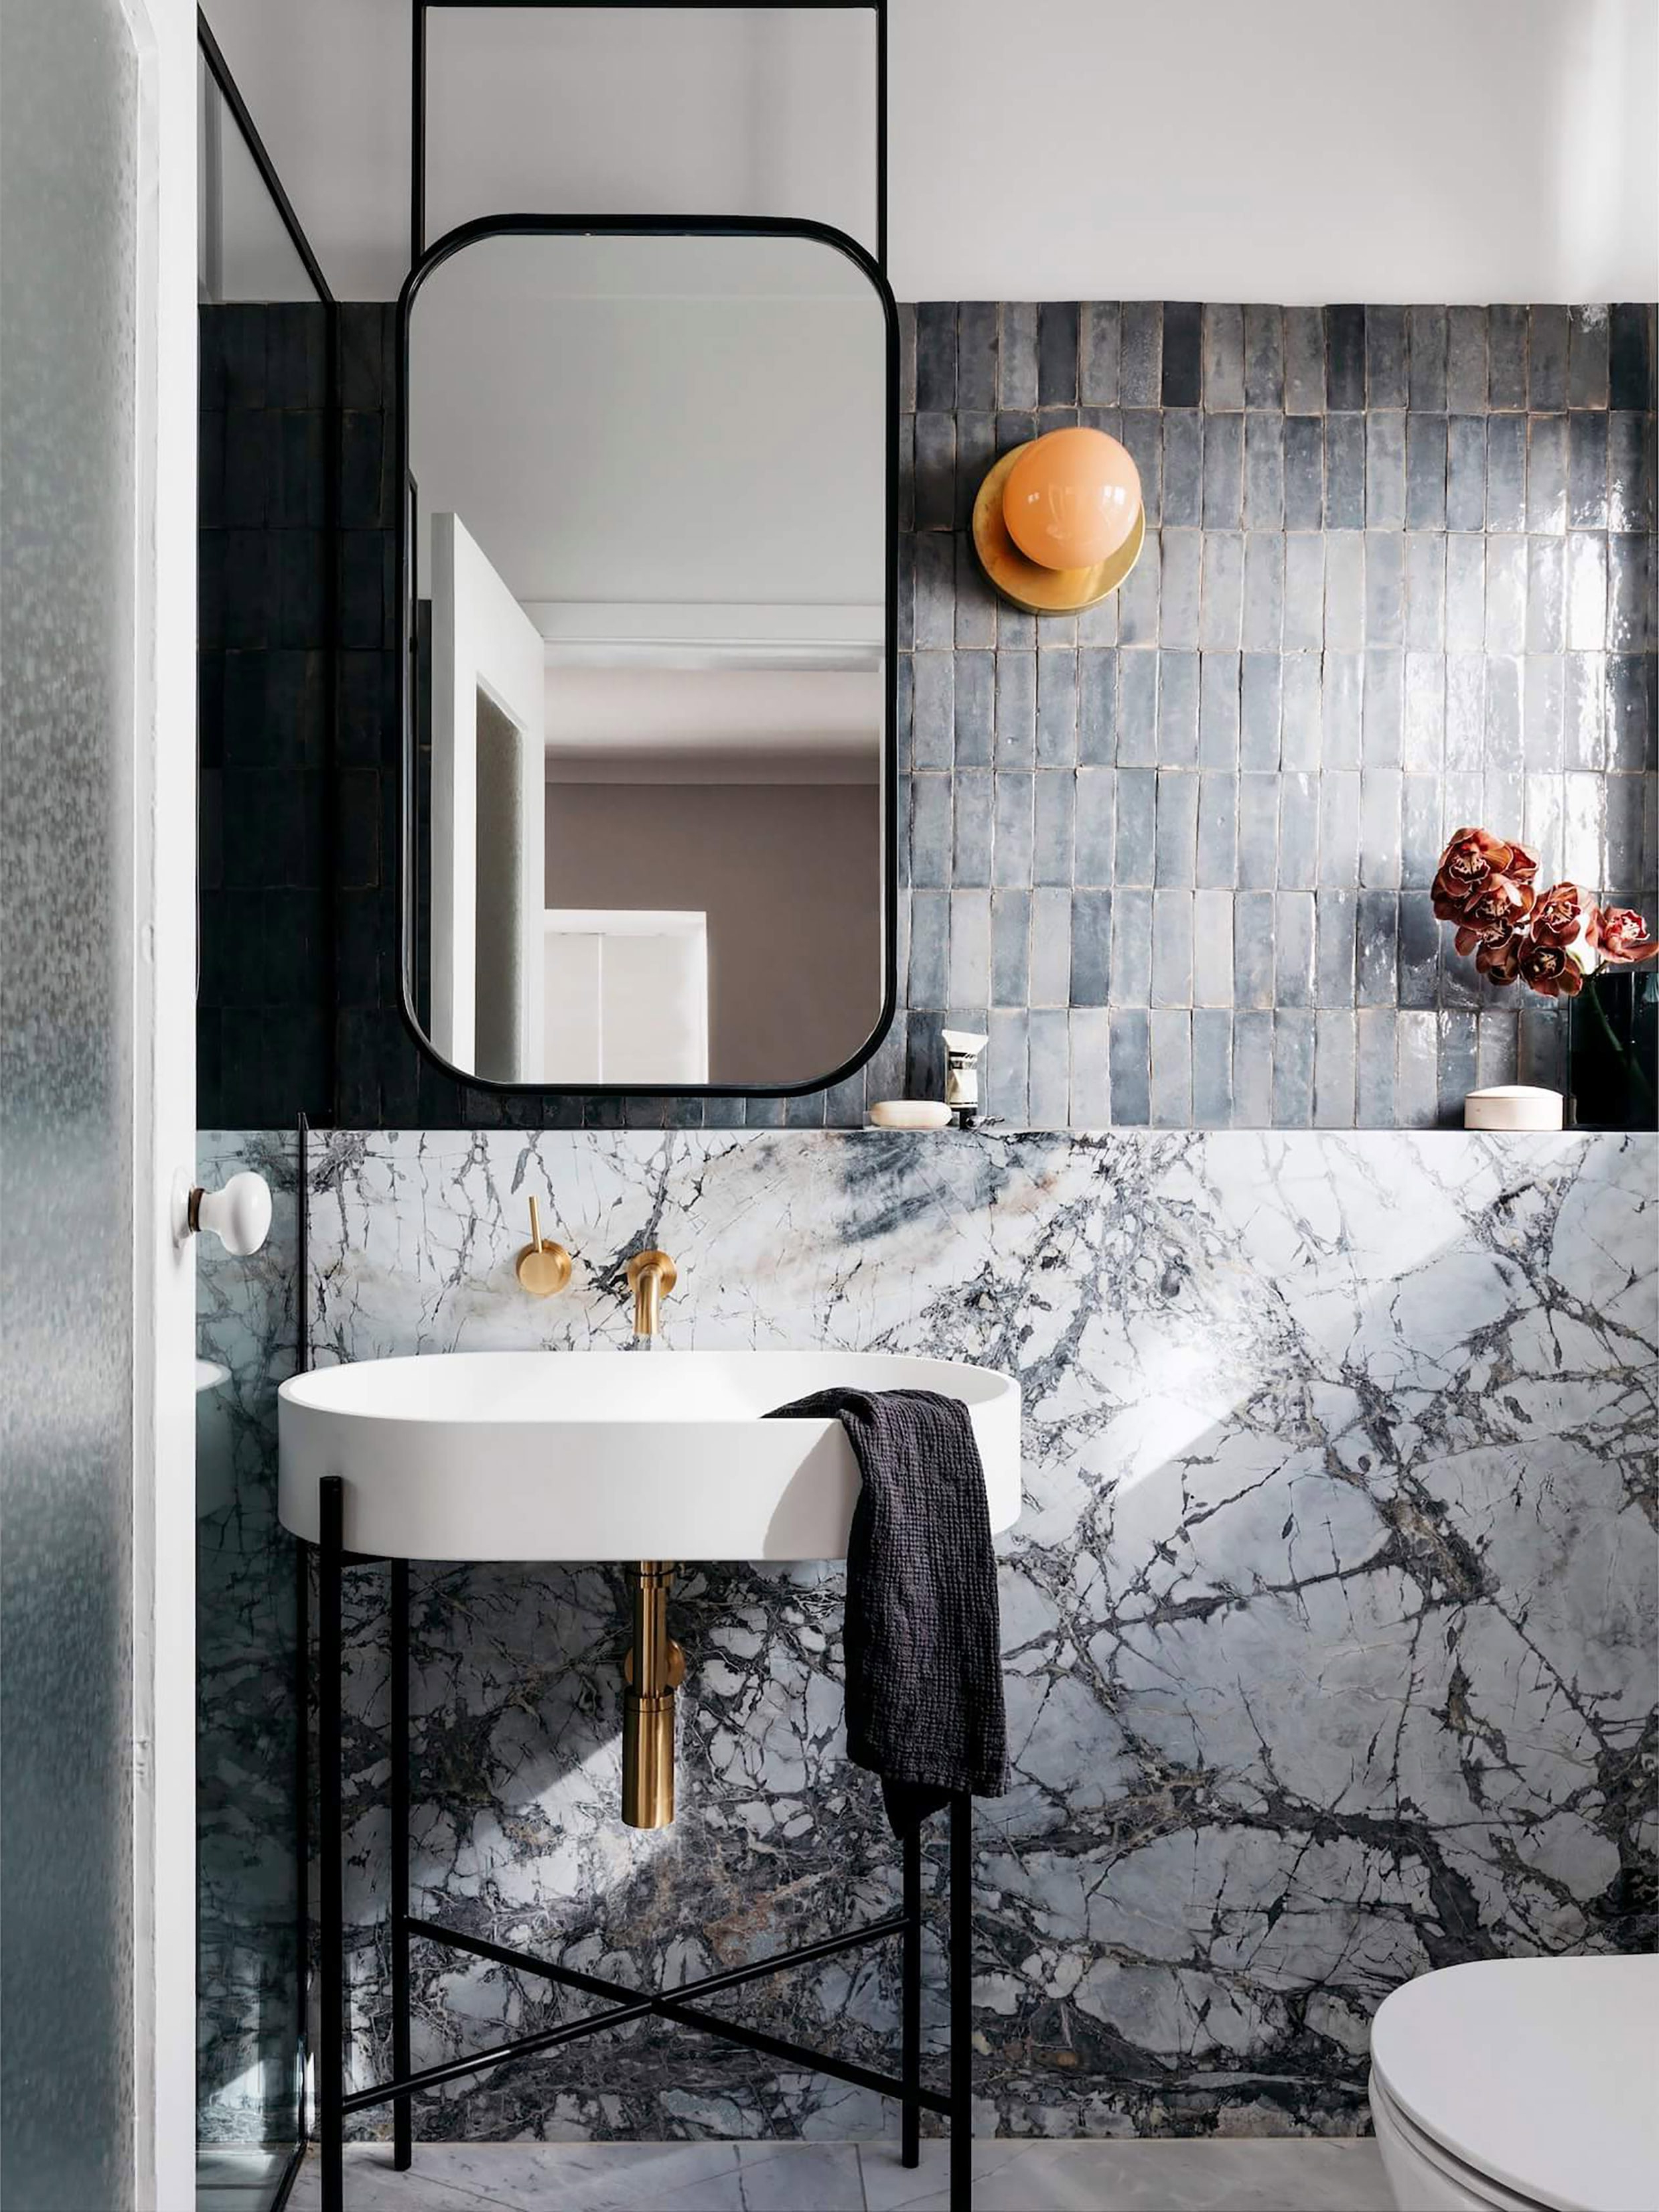 Small Bathroom Wall Mirrors Inside Recent 17 Fresh & Inspiring Bathroom Mirror Ideas To Shake Up Your (View 10 of 20)